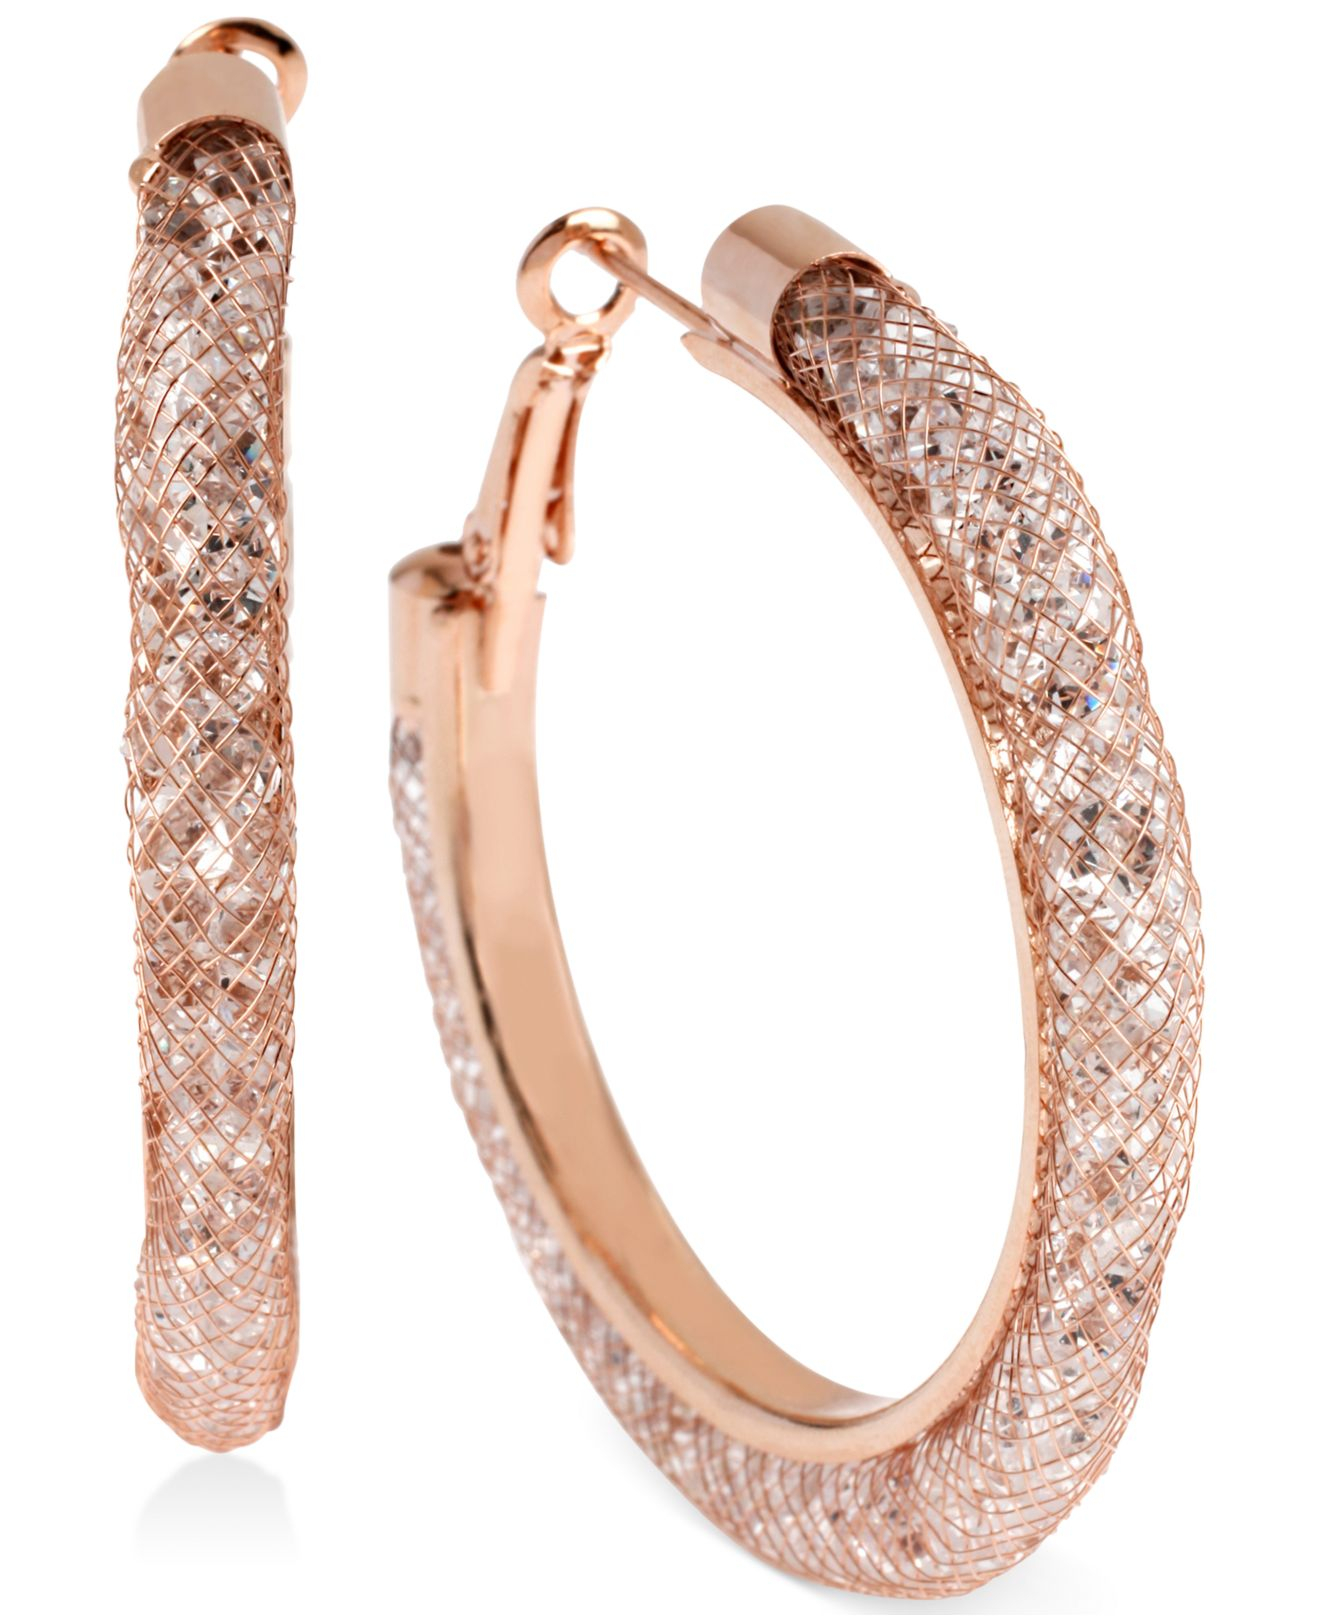 Lyst Betsey Johnson Rose GoldTone MeshWrapped Crystal Hoop